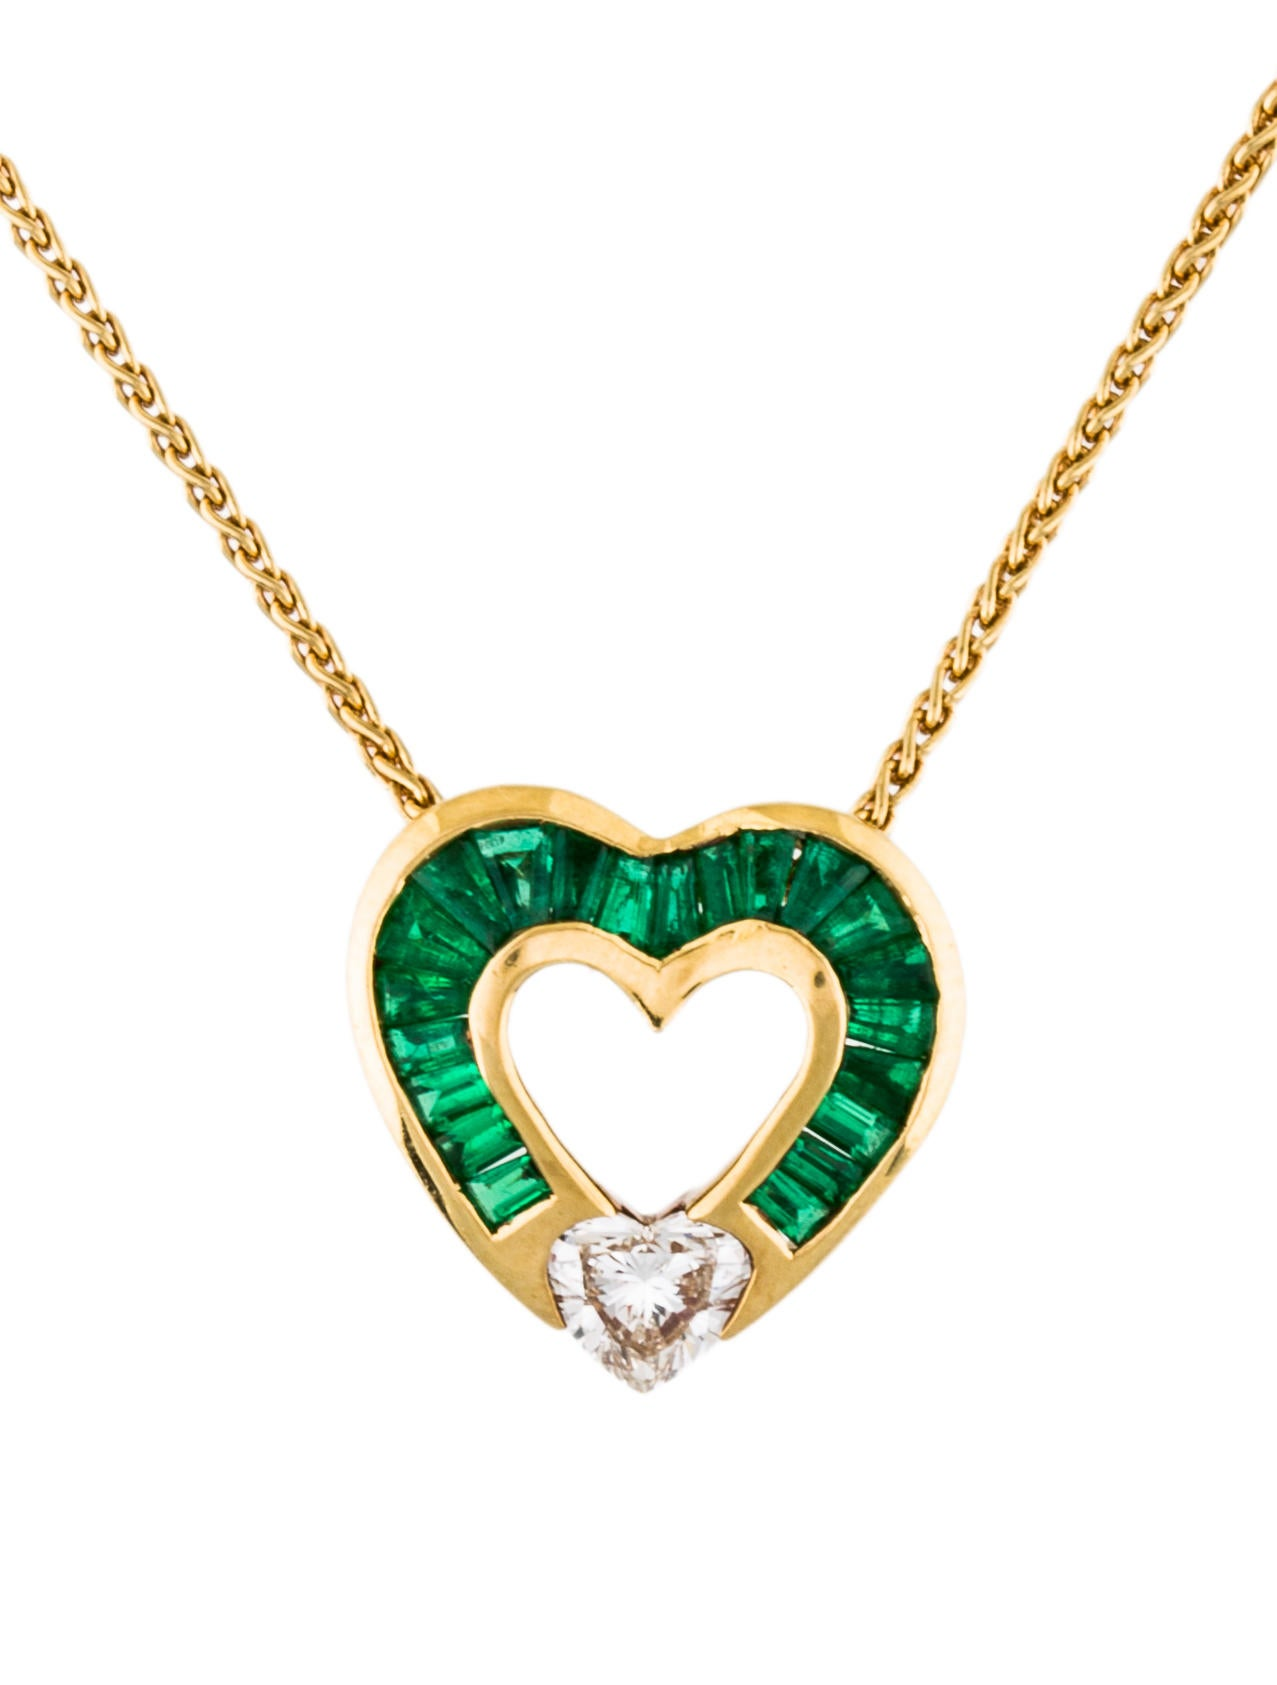 Charles krypell 18k diamond emerald heart pendant necklace 18k diamond emerald heart pendant necklace aloadofball